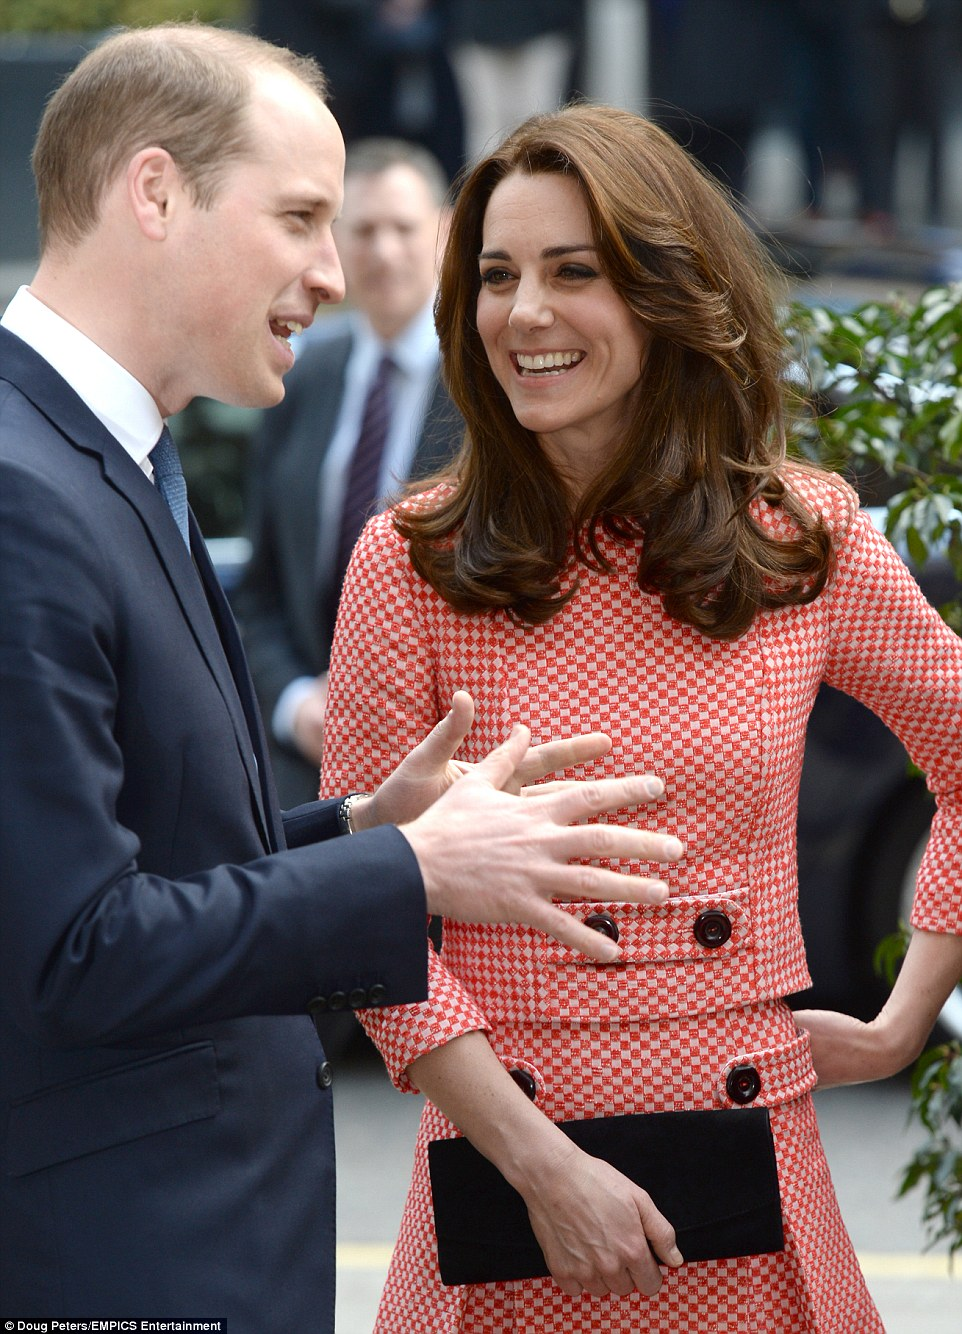 Kate Middleton wears chic gingham dress on official visit